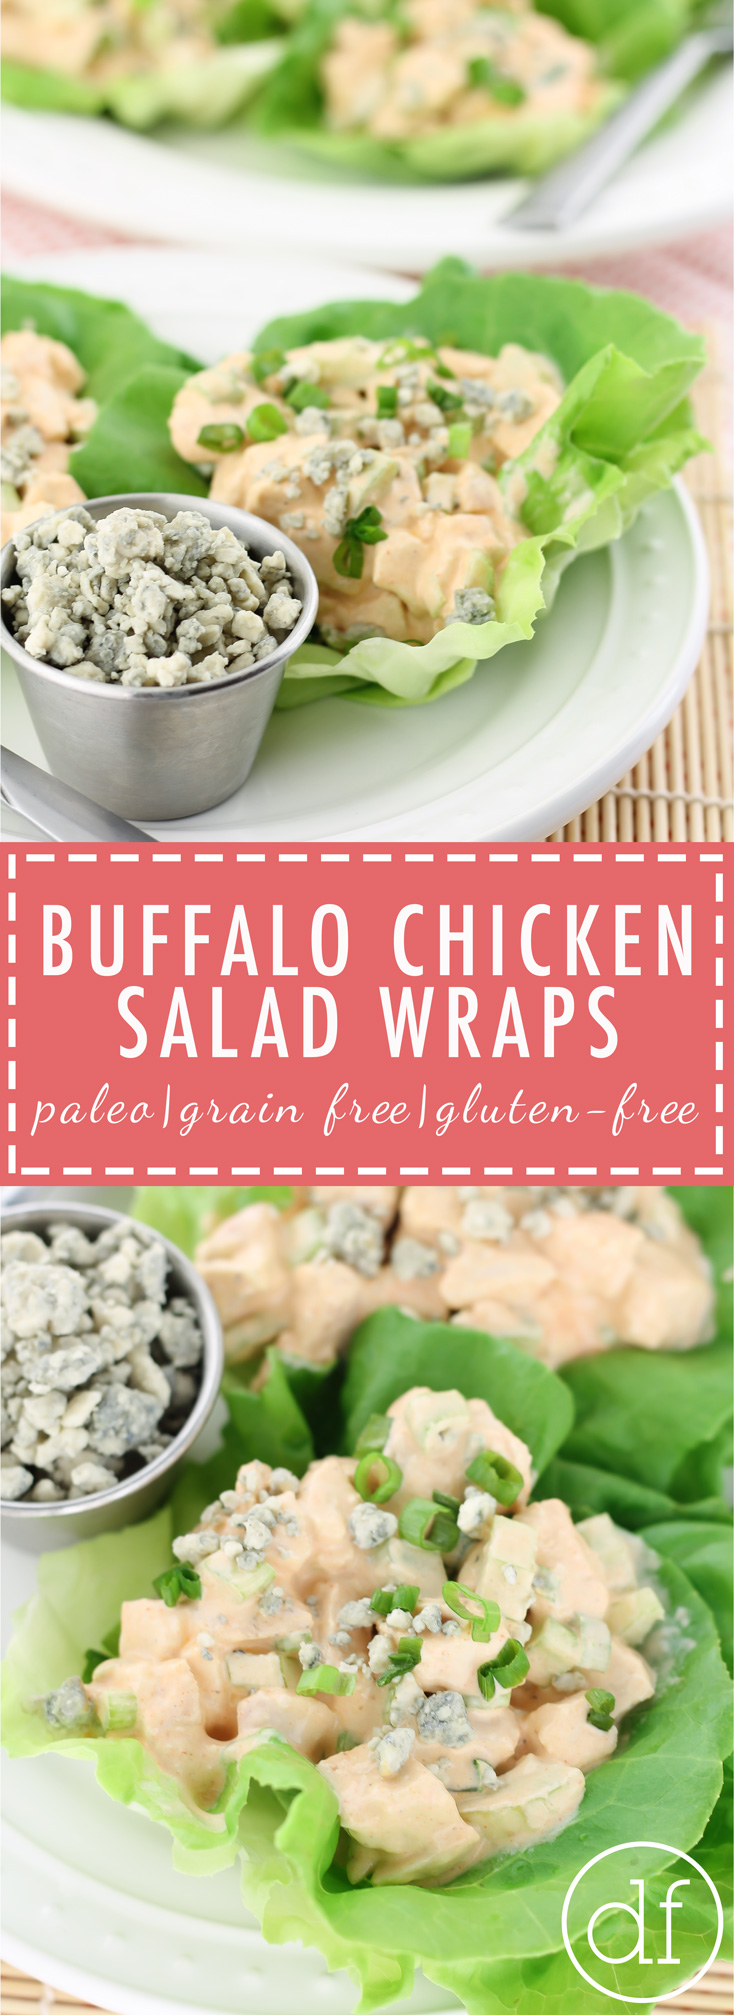 Buffalo Chicken Salad, Chicken Salad, Whole30, 21DSD, Chicken, Non-processed, Quick Dinner, healthy dinner, lunch recipe